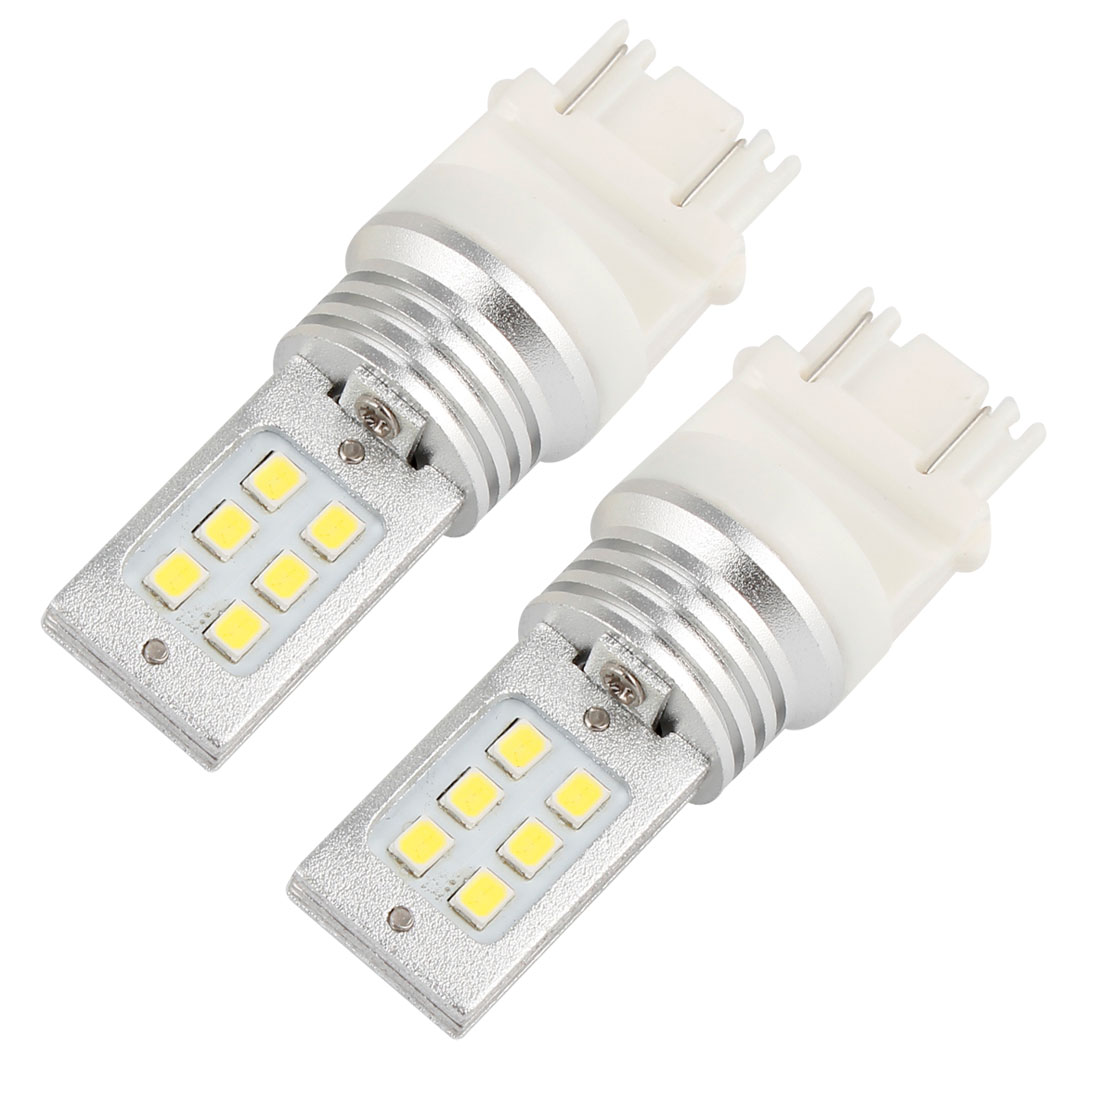 2PCS Car White T25 3157 Socket 3528 SMD 12 LED Lamp Brake Light Bulbs DC 12-24V